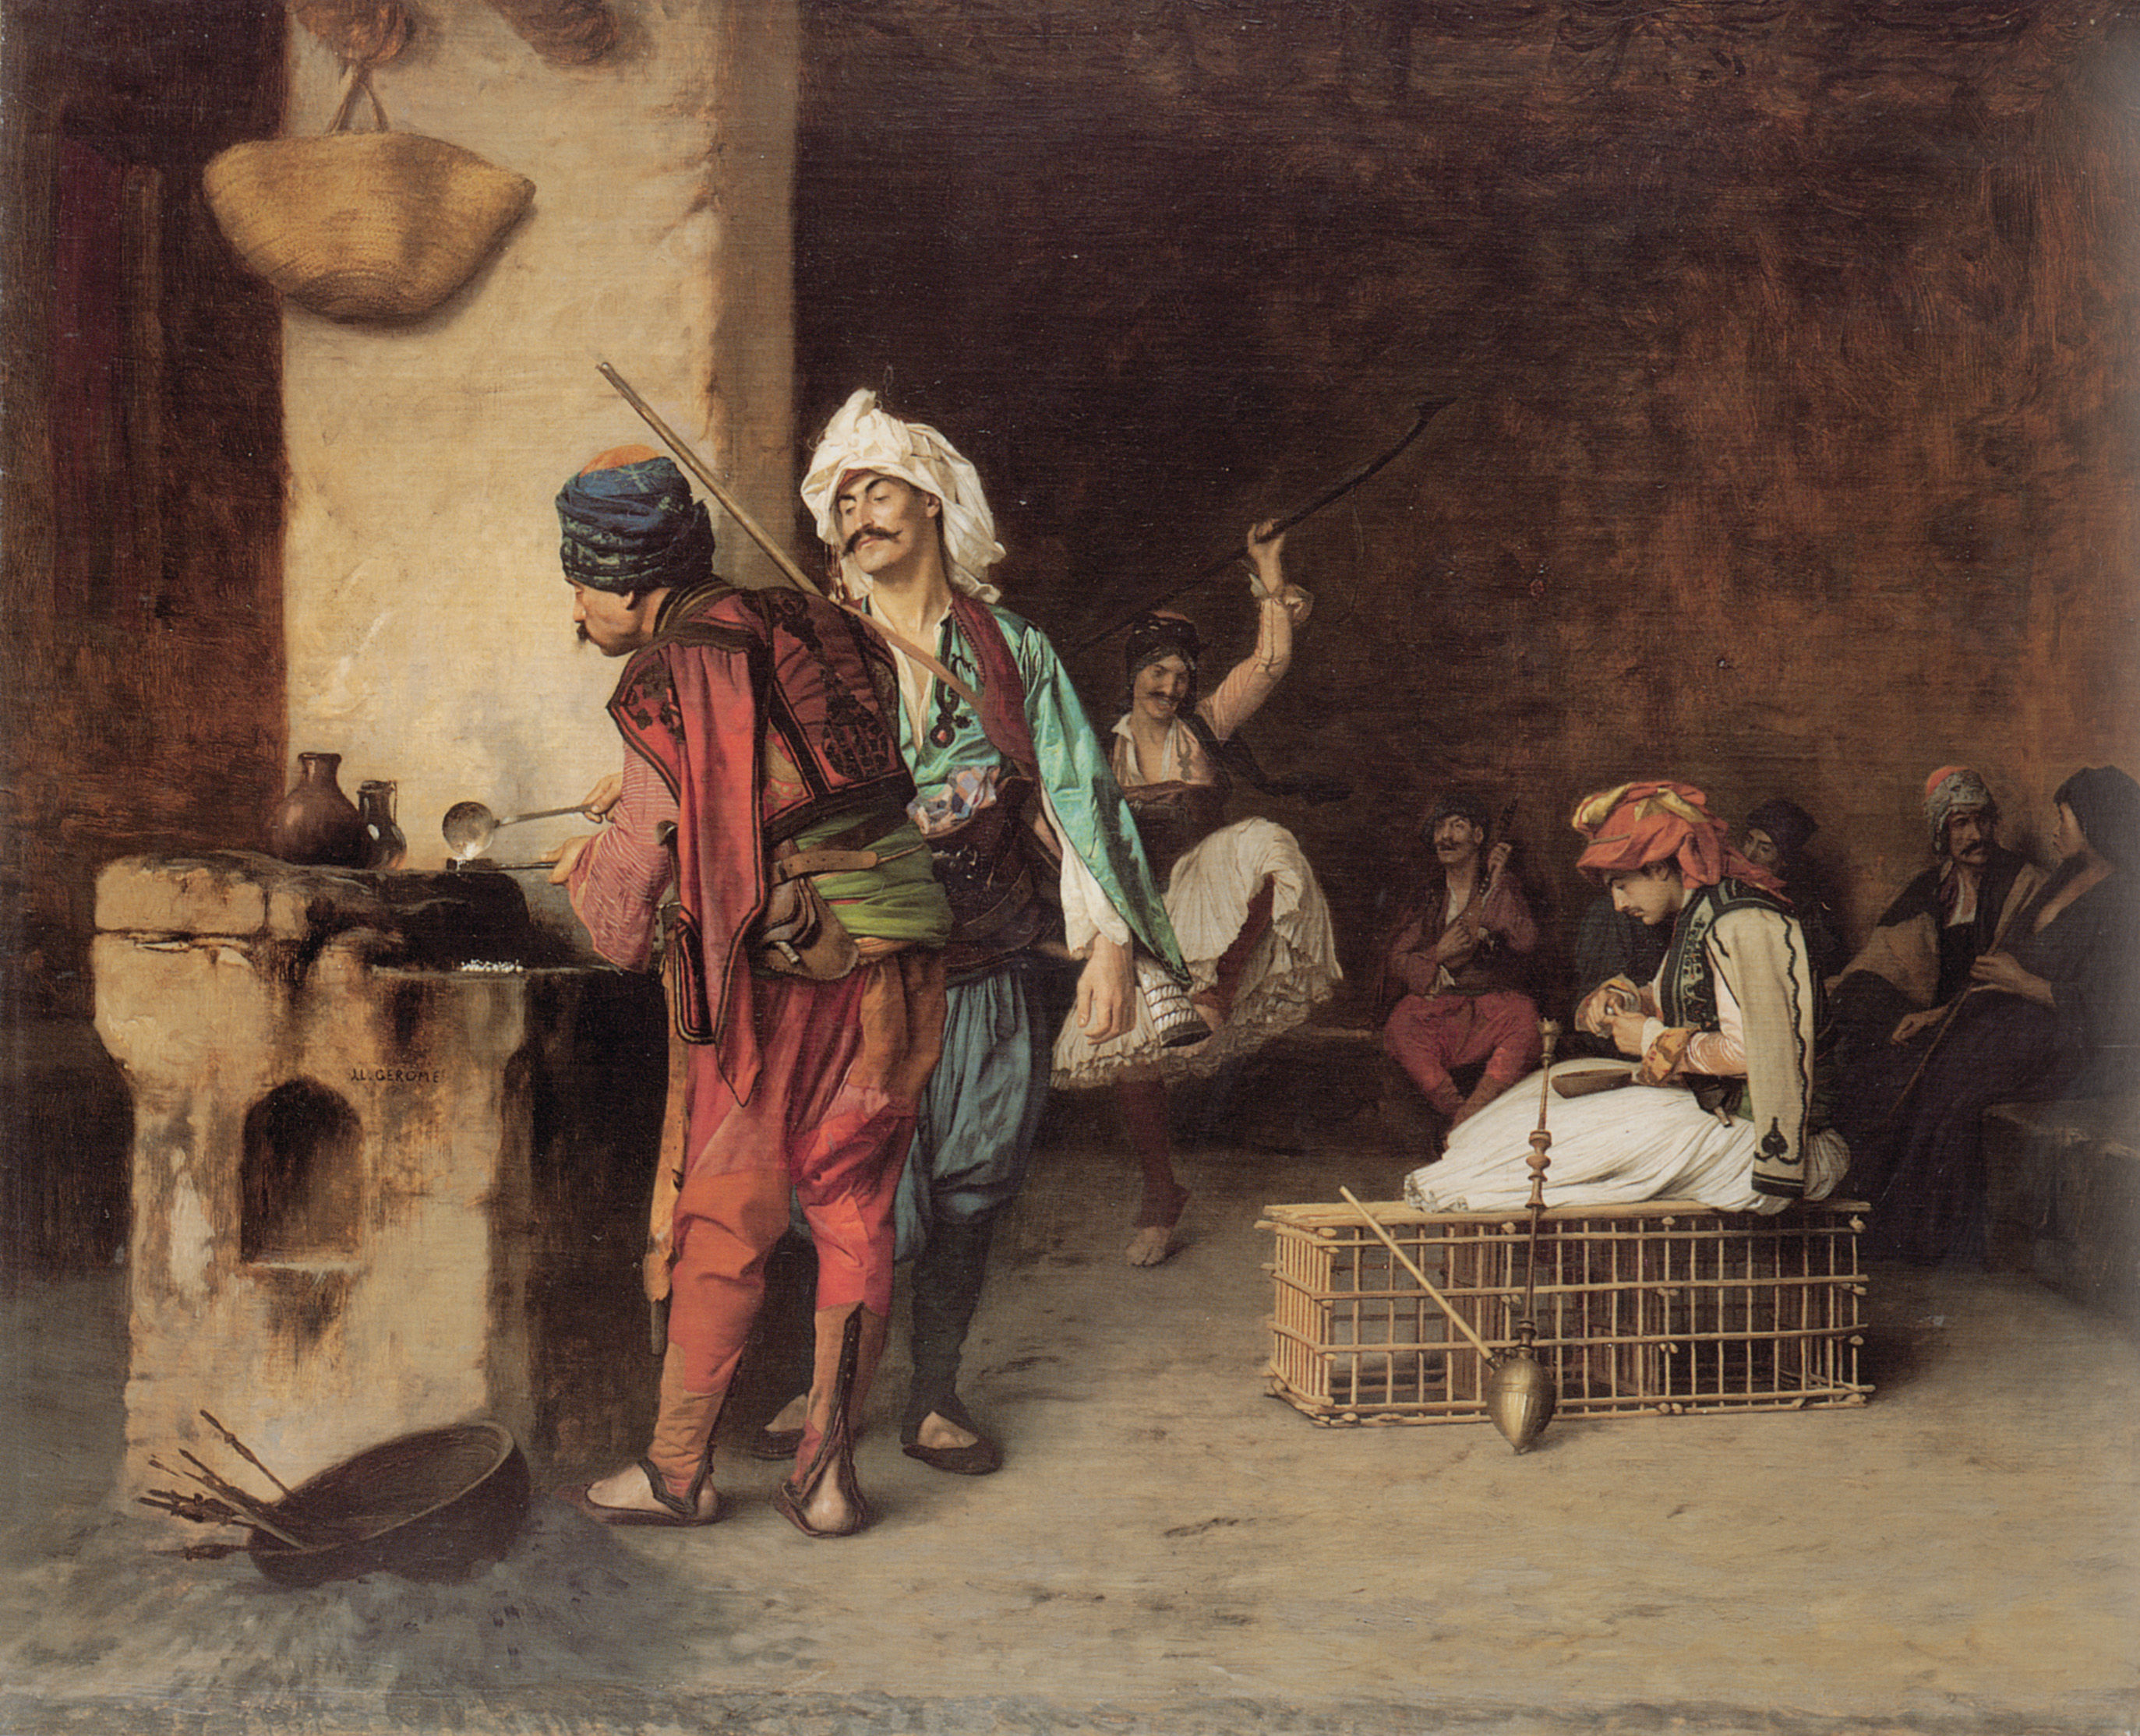 A Caf in Cairo :: Jean-Leon Gerome - scenes of Oriental life (Orientalism) in art and painting ôîòî